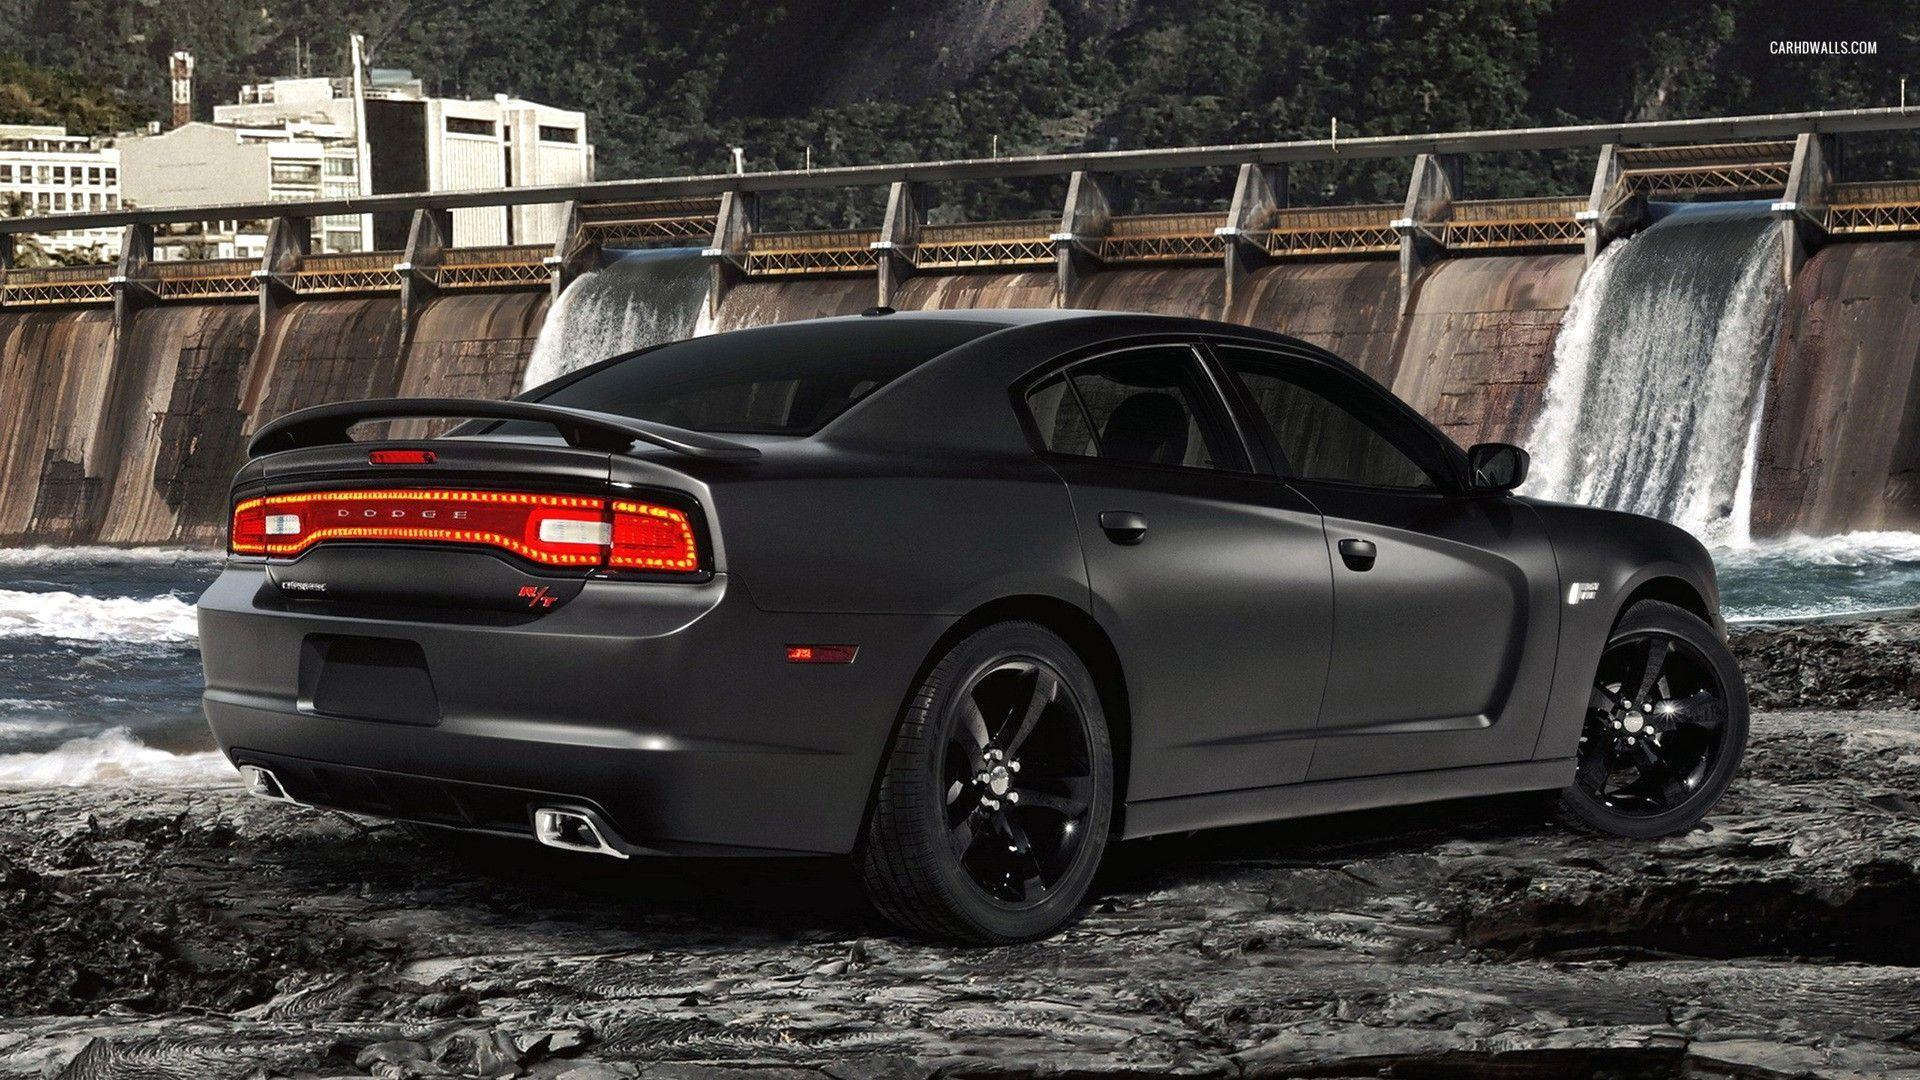 2016 Dodge Challenger Hellcat Wallpaper >> 2016 Dodge Challenger Black Wallpapers - Wallpaper Cave